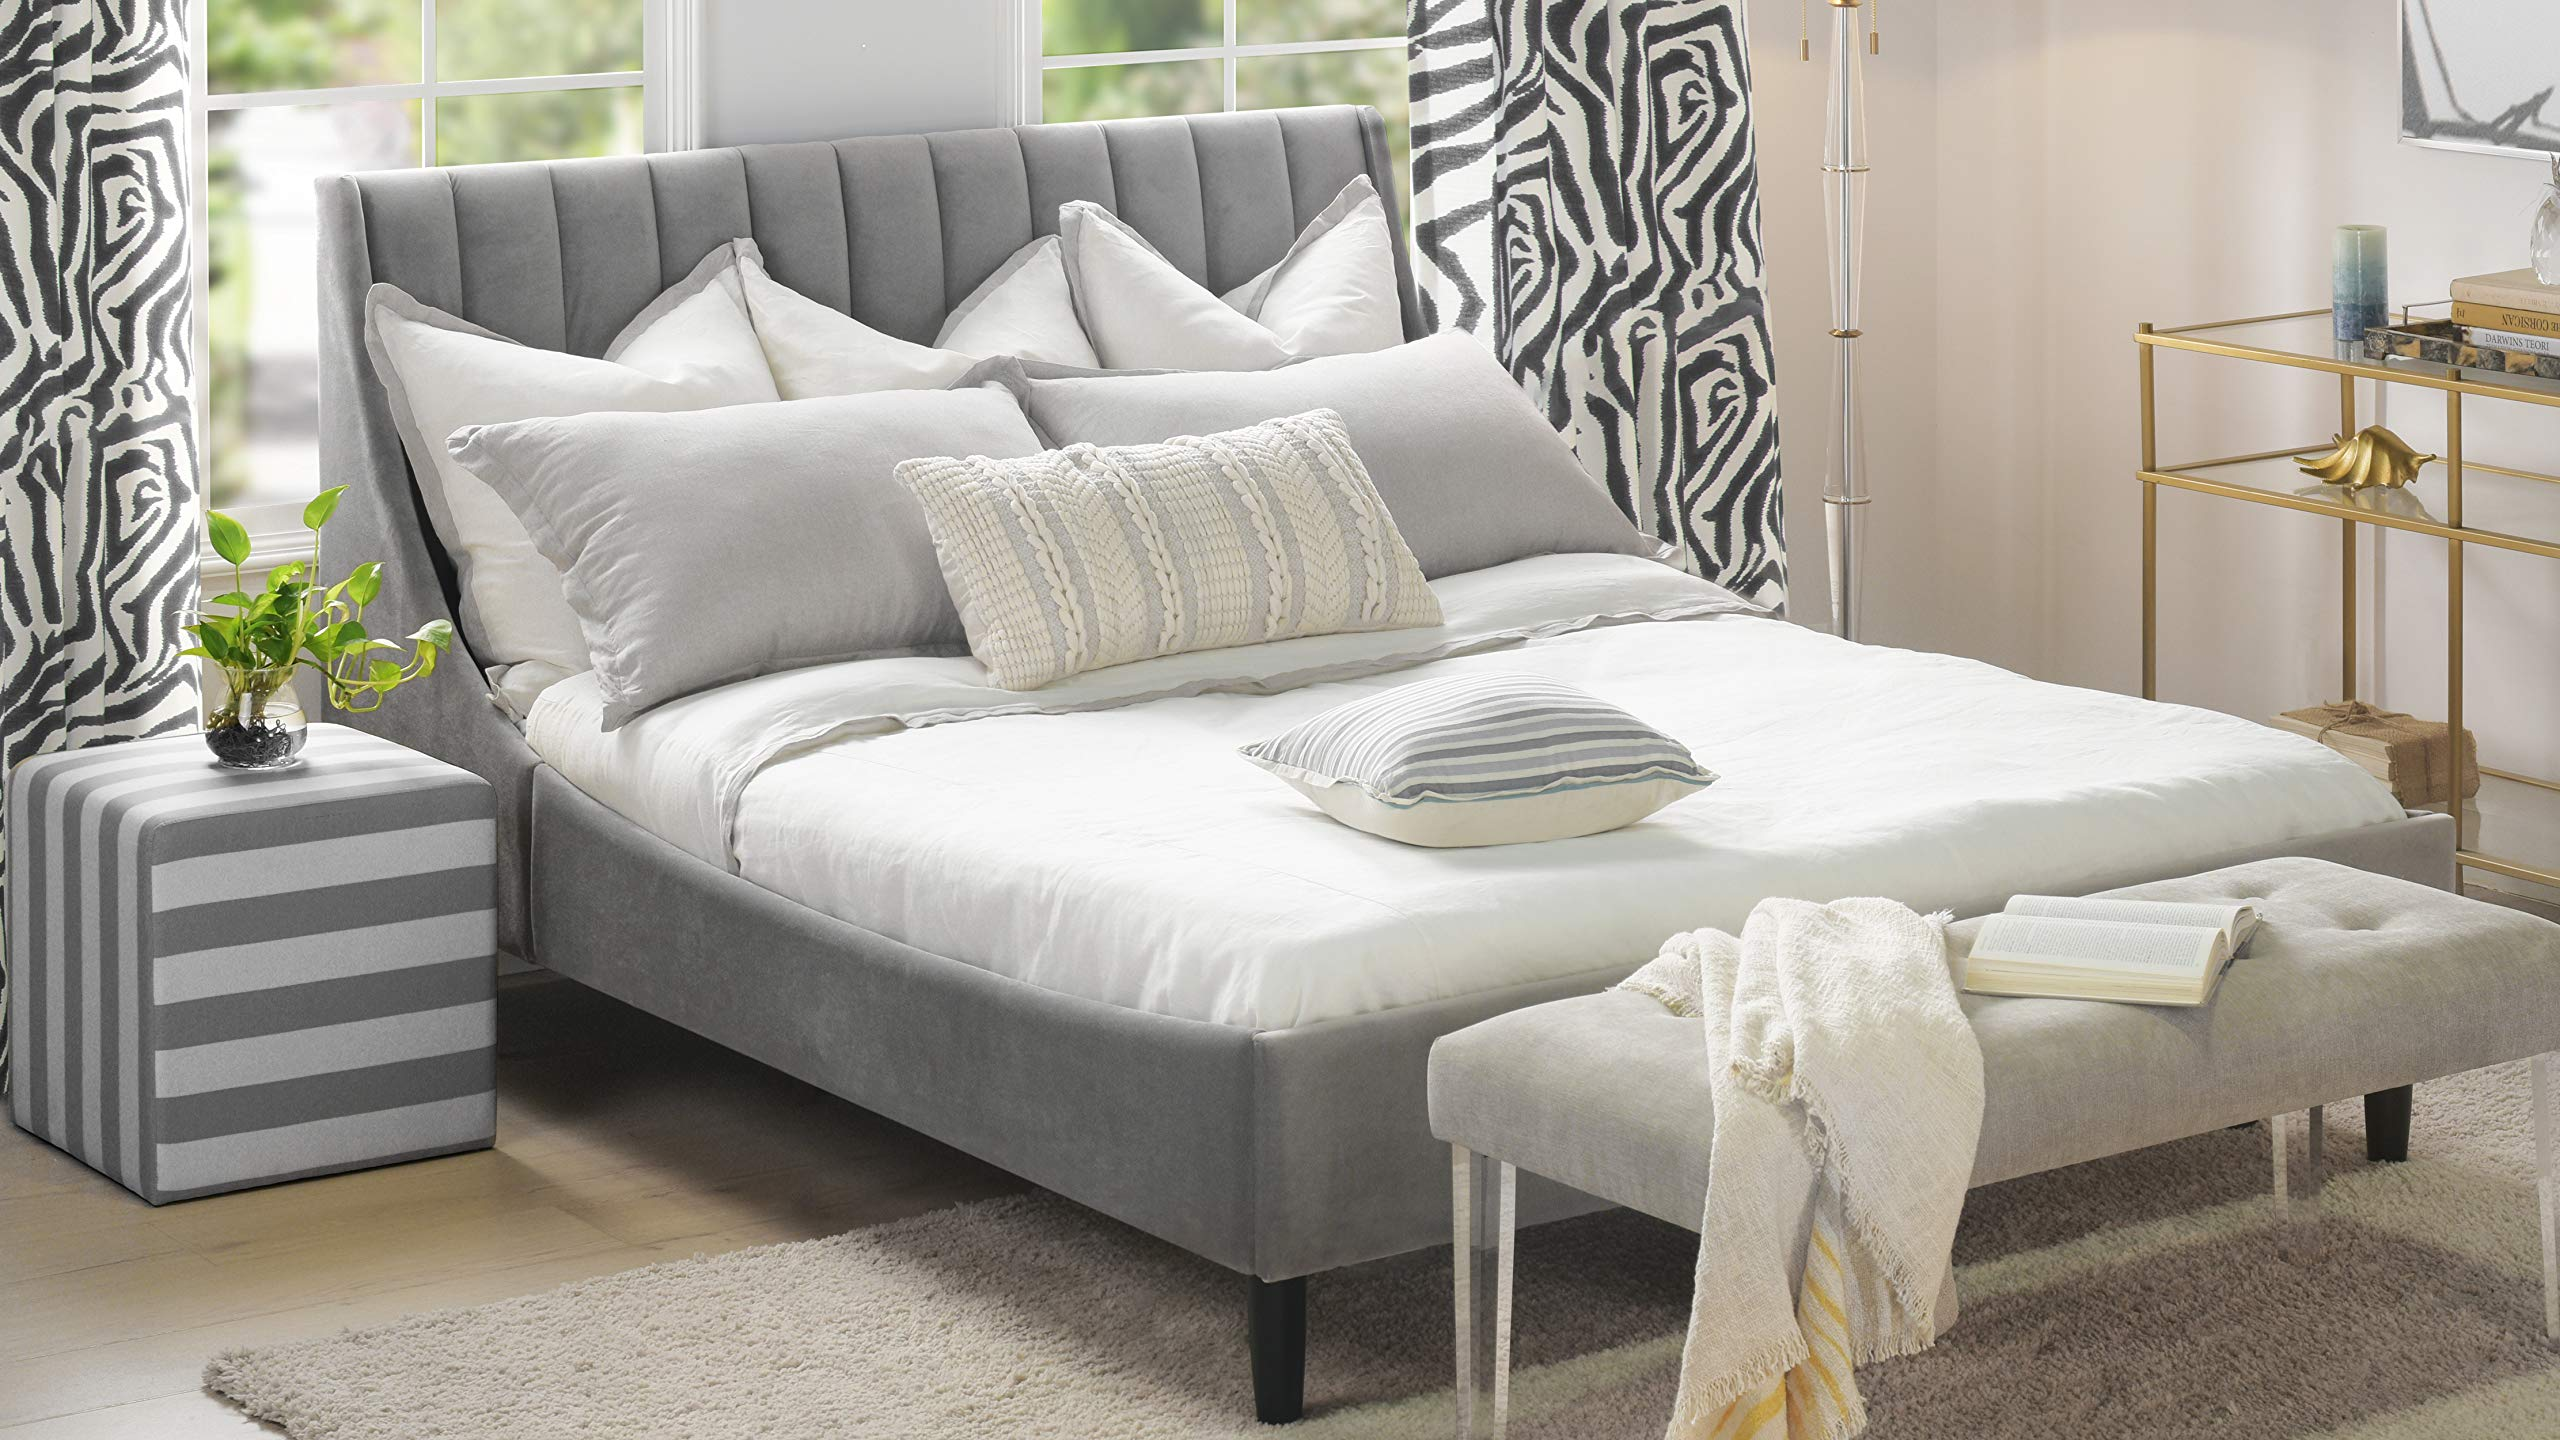 Sandy Wilson Home Aspen Platform Bed, Queen, Opal Grey by Sandy Wilson Home